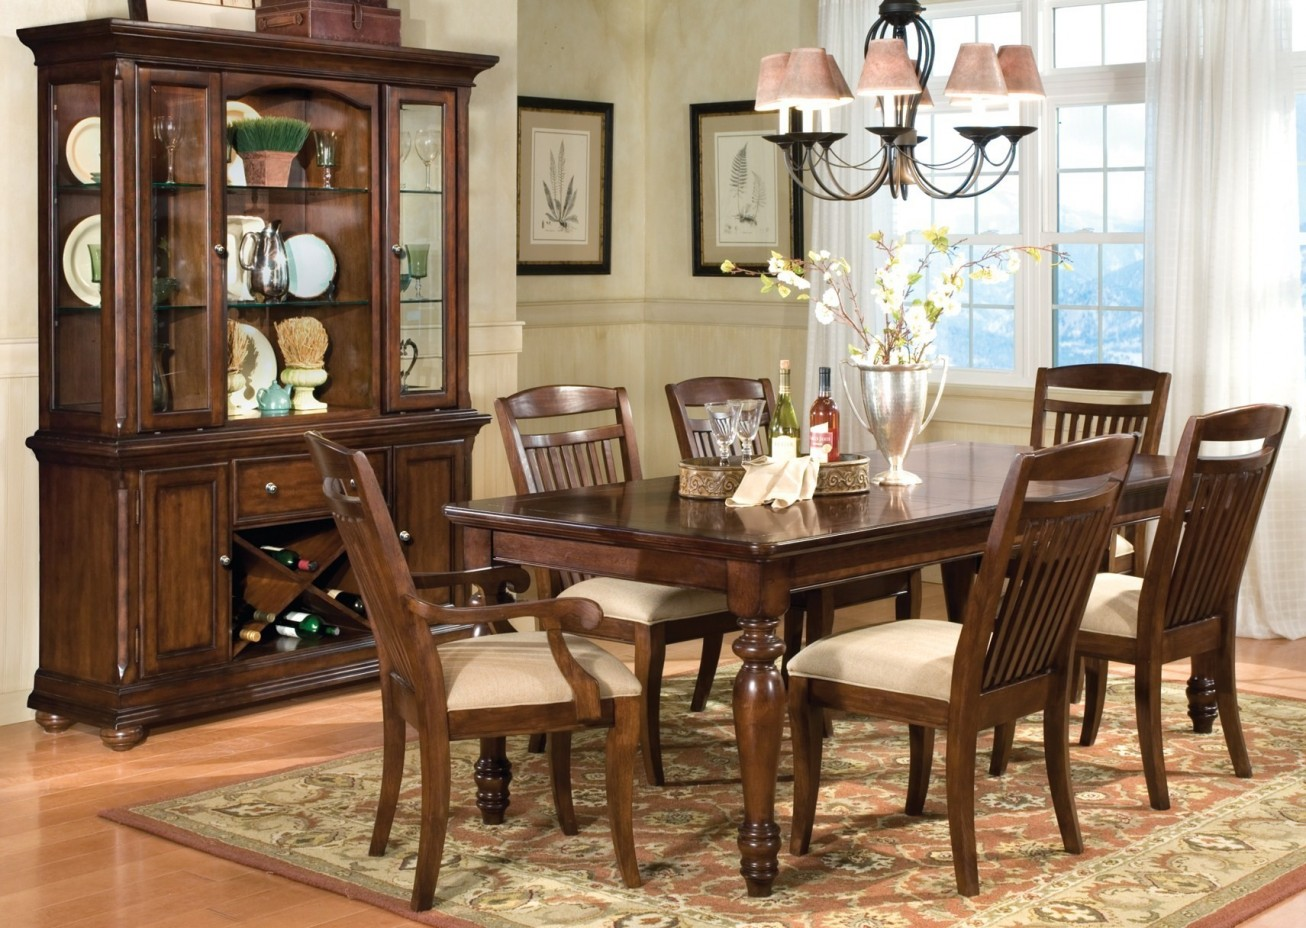 ashley furniture dining room chairs kids chair with ottoman sets inspiration home magazine